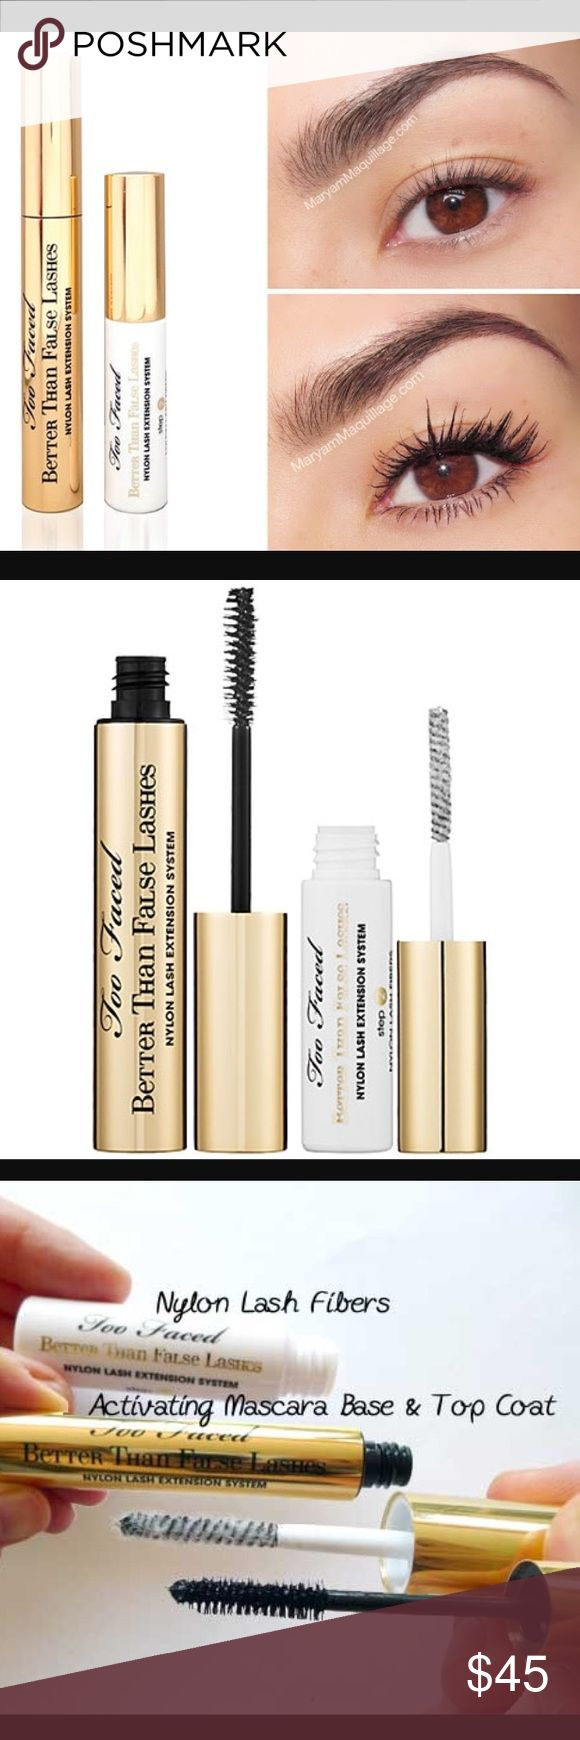 Too Faced Better Than False lashes Mascara This do-it-yourself 3 step system allows you to achieve the dramatic impact of false lashes and Extreme length of lash extensions without the hassle, cost or commitment. In great condition and never been used. NWOT Sephora Makeup Mascara